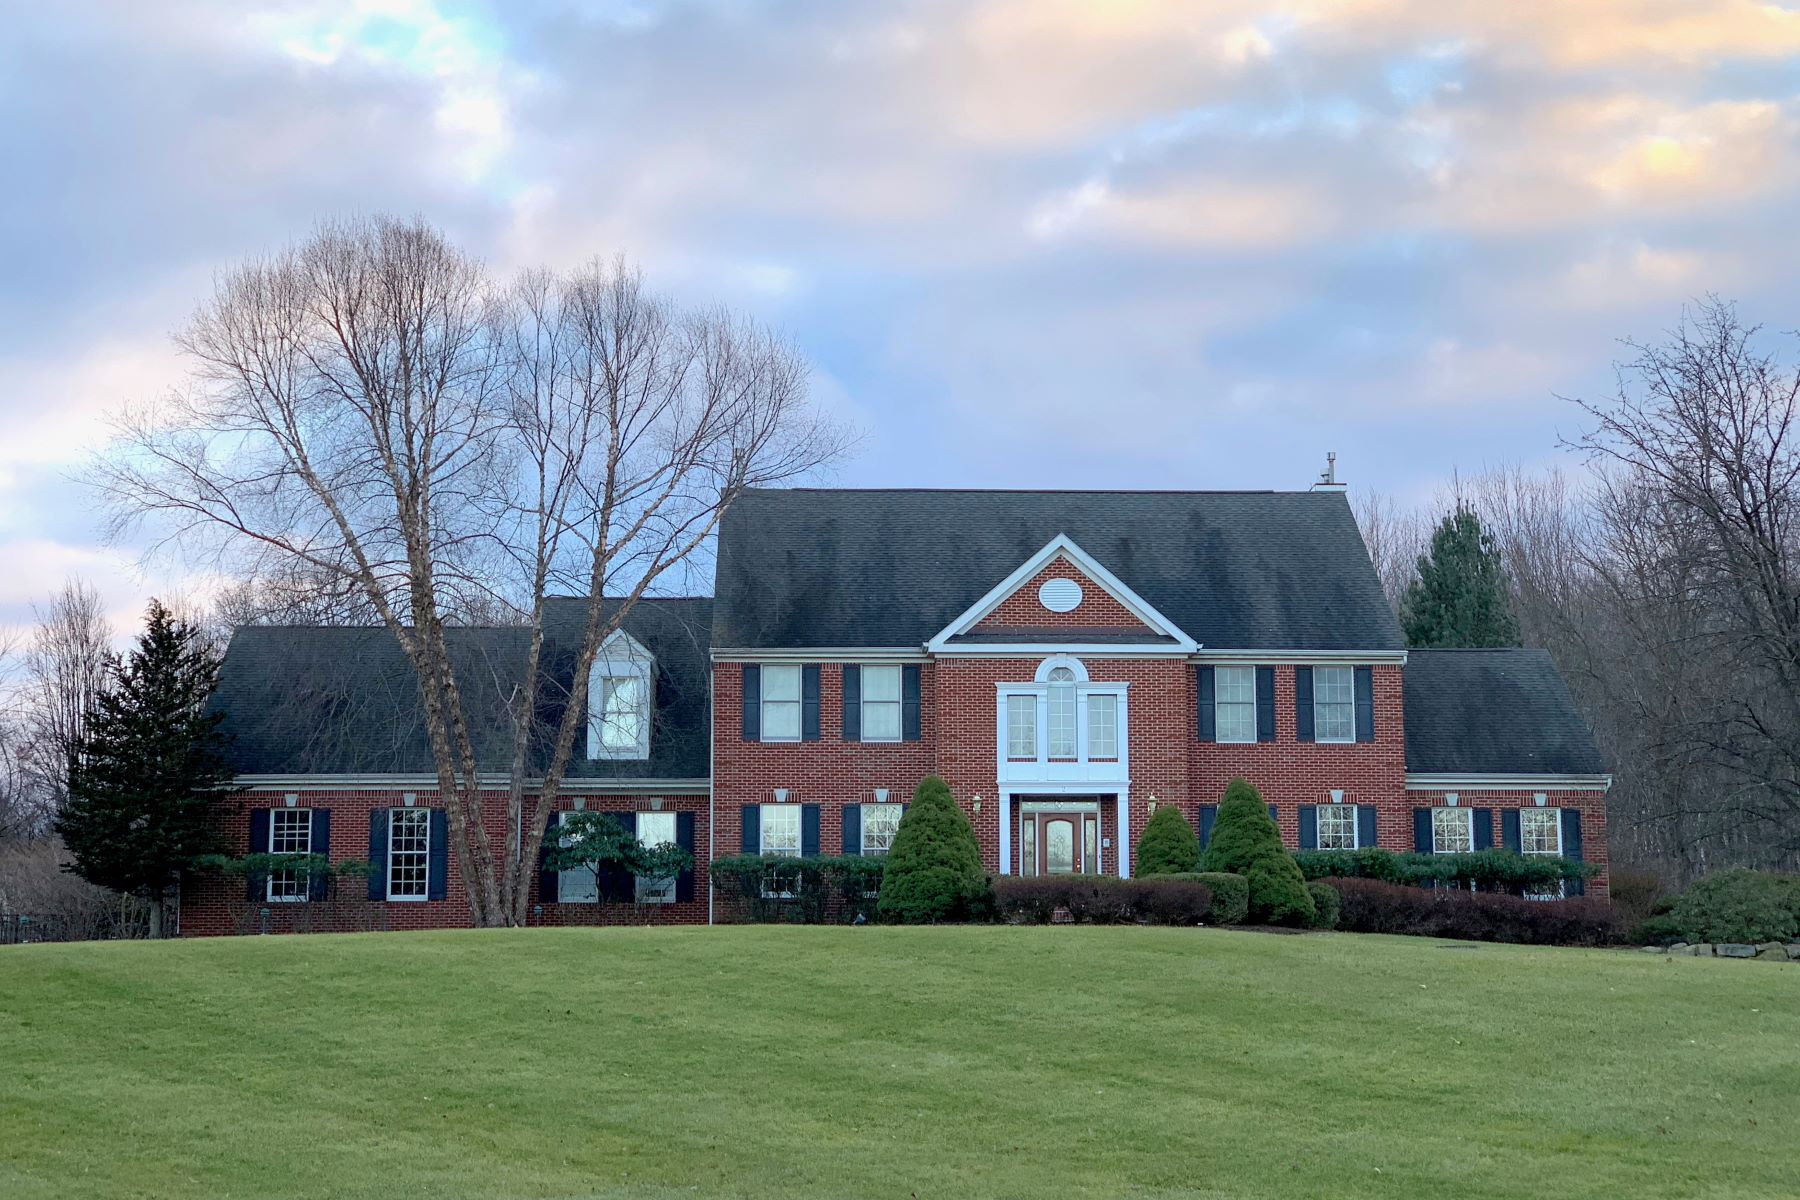 Single Family Homes for Sale at Elegant Colonial 2 Harvest Lane Long Valley, New Jersey 07853 United States